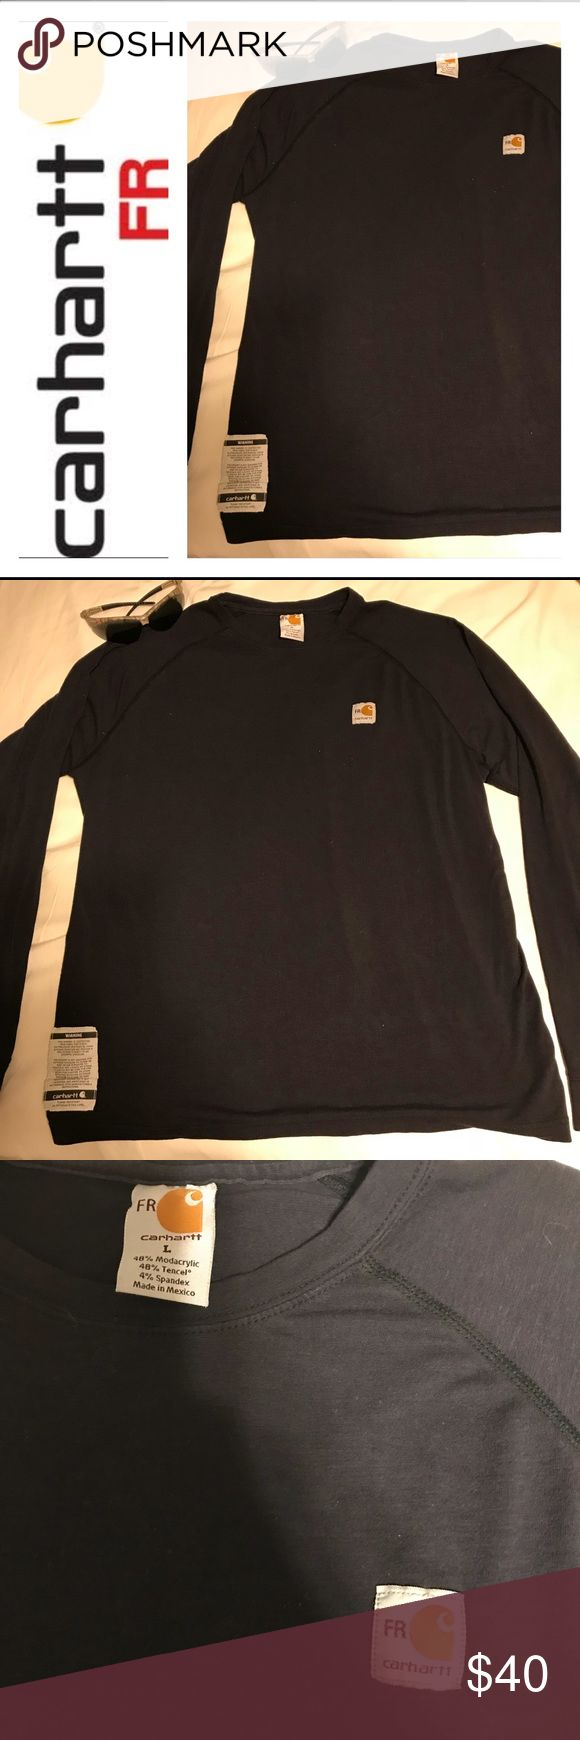 🔥 CARHARTT FR LONG SLEEVE SHIRT 🔥 🔥 CARHARTT FIRE RESISTANCE LONG SLEEVE  🔥 WORE ONLY ONES  🔥SIZE LARGE FITTED .. PERFECT FOR WORKWEAR 🔥NAVY DARK BLUE 🔥BUNDLE & SAVE Carhartt Shirts Tees - Long Sleeve